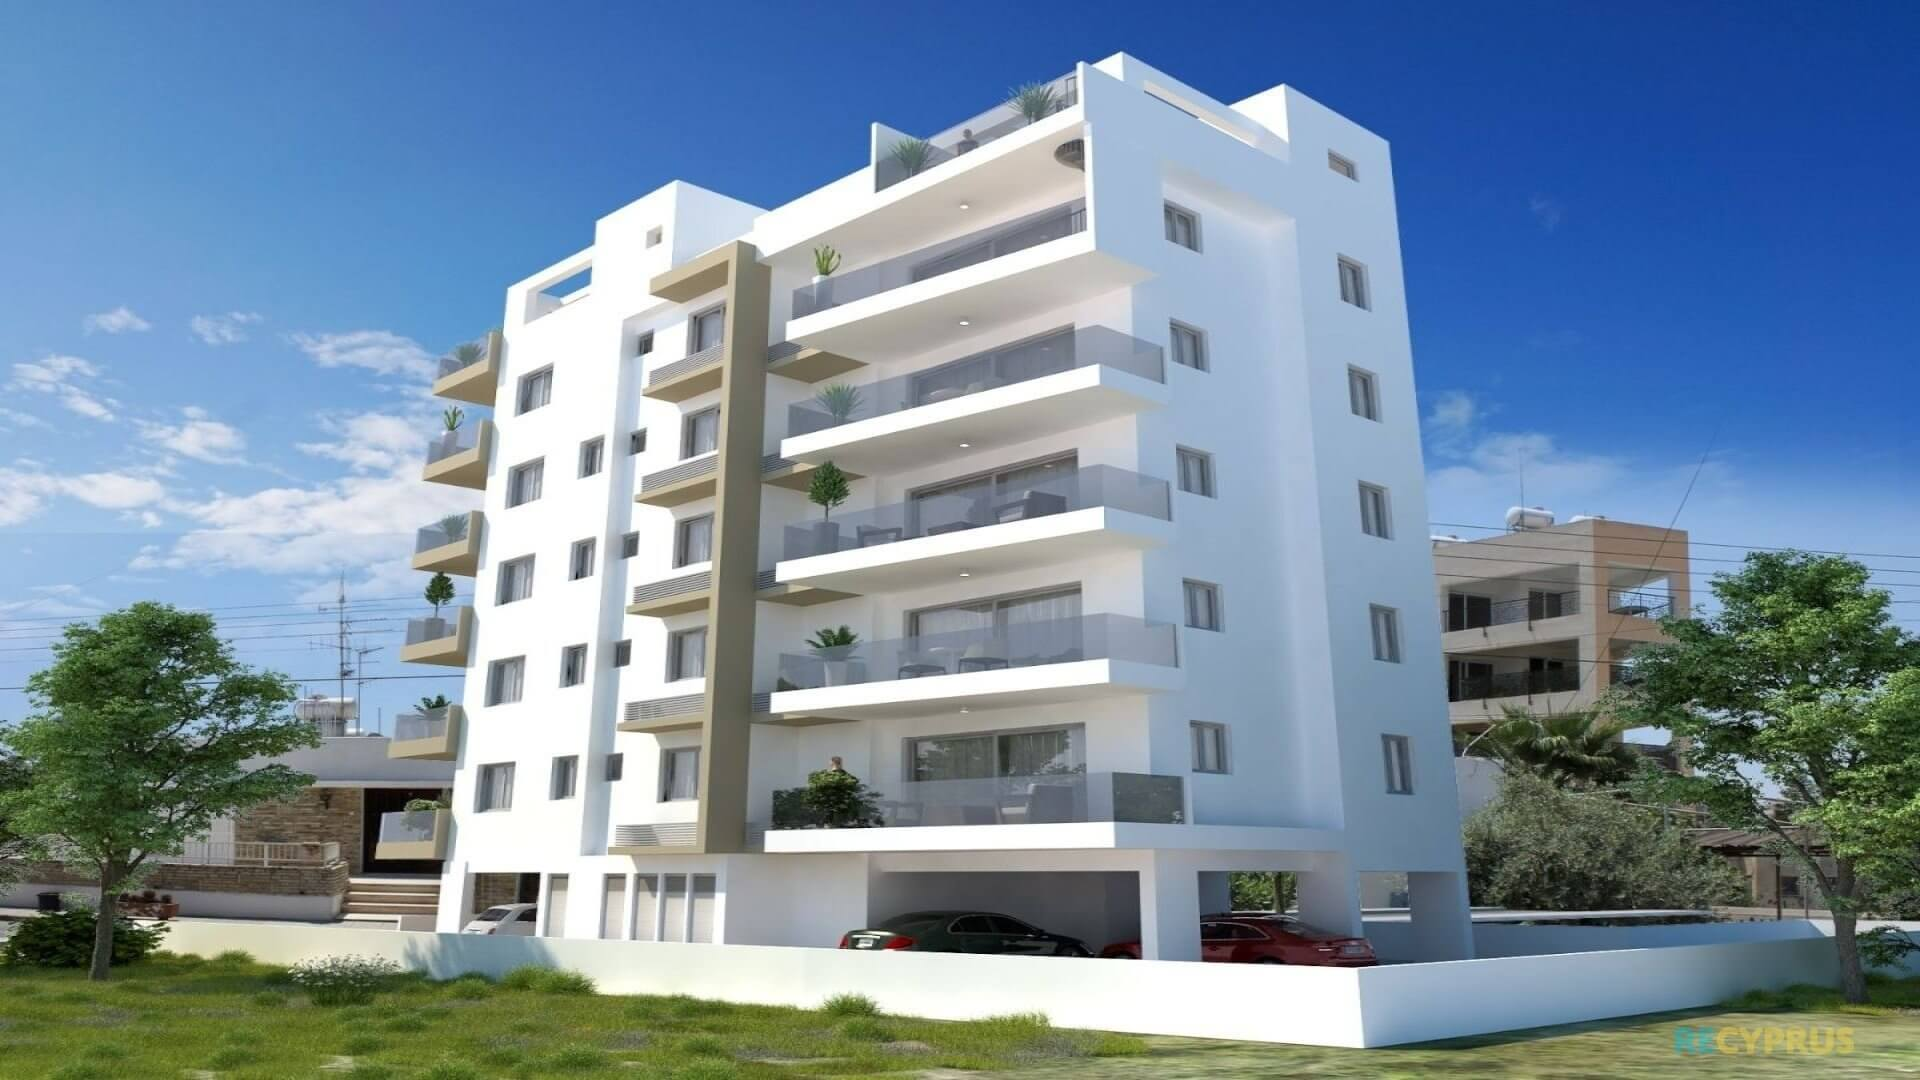 Apartment for sale City Center Larnaca Cyprus 1 3595